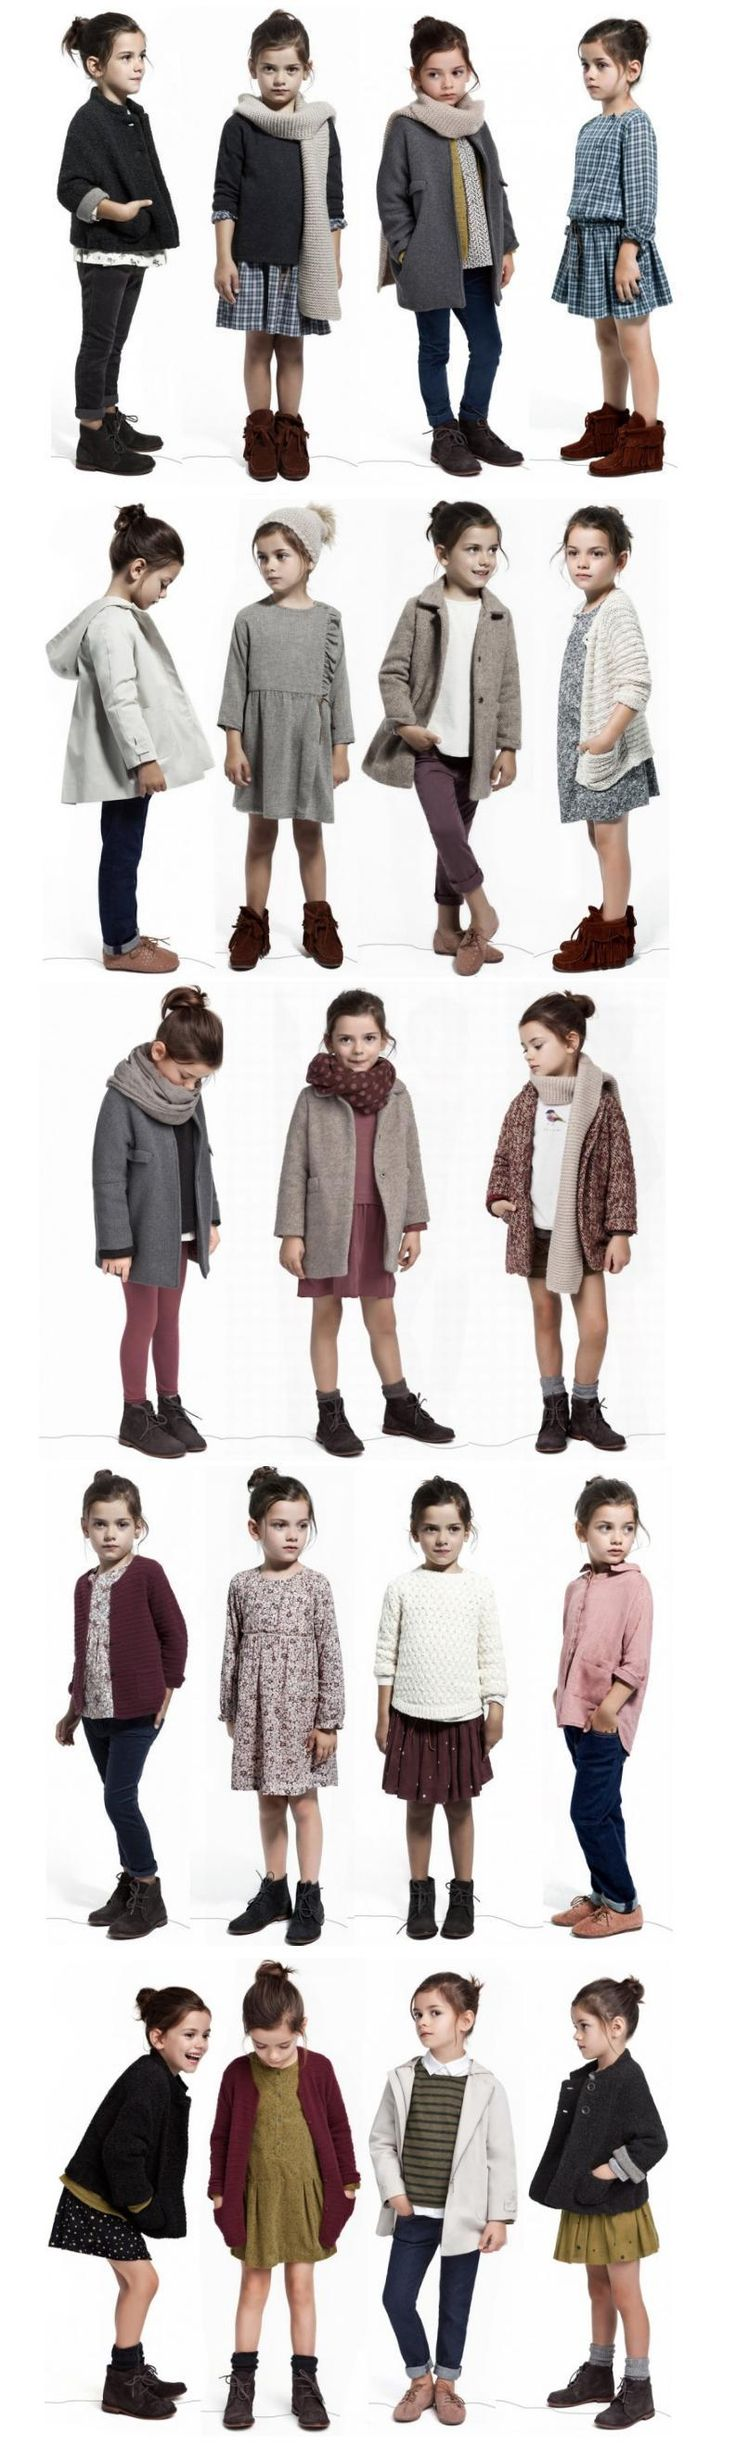 best outfits kids girls images on pinterest kids fashion boy